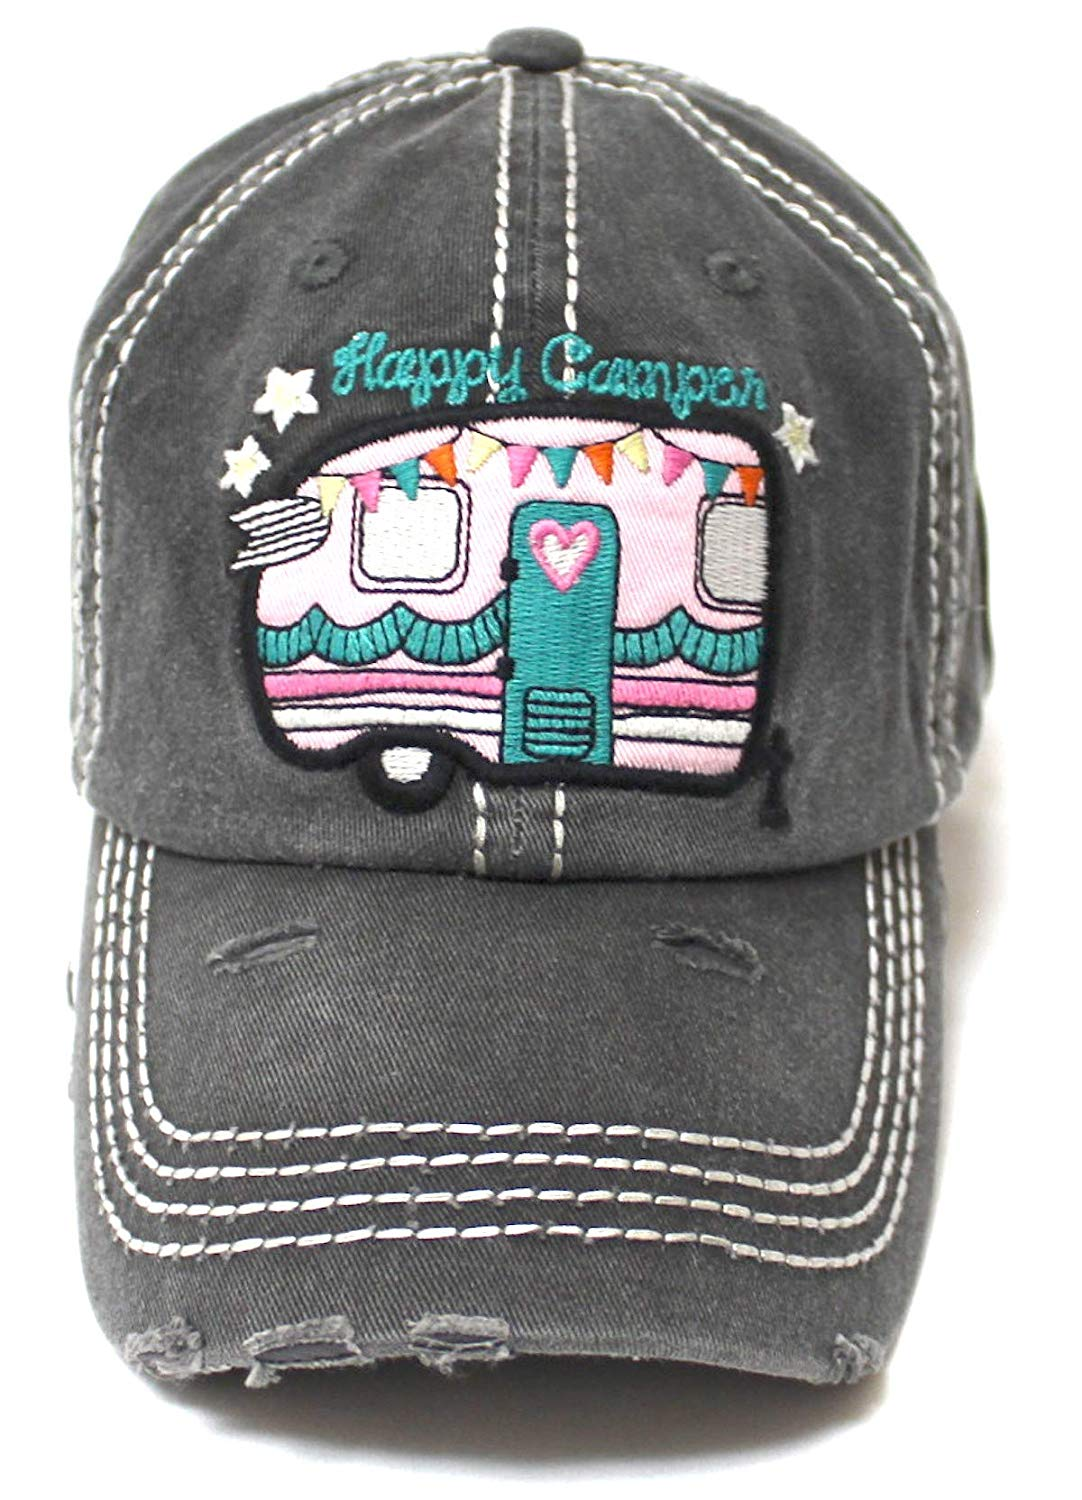 Women's Baseball Cap Cute Happy Camper Monogram Embroidery Design Hat, Grey - Caps 'N Vintage